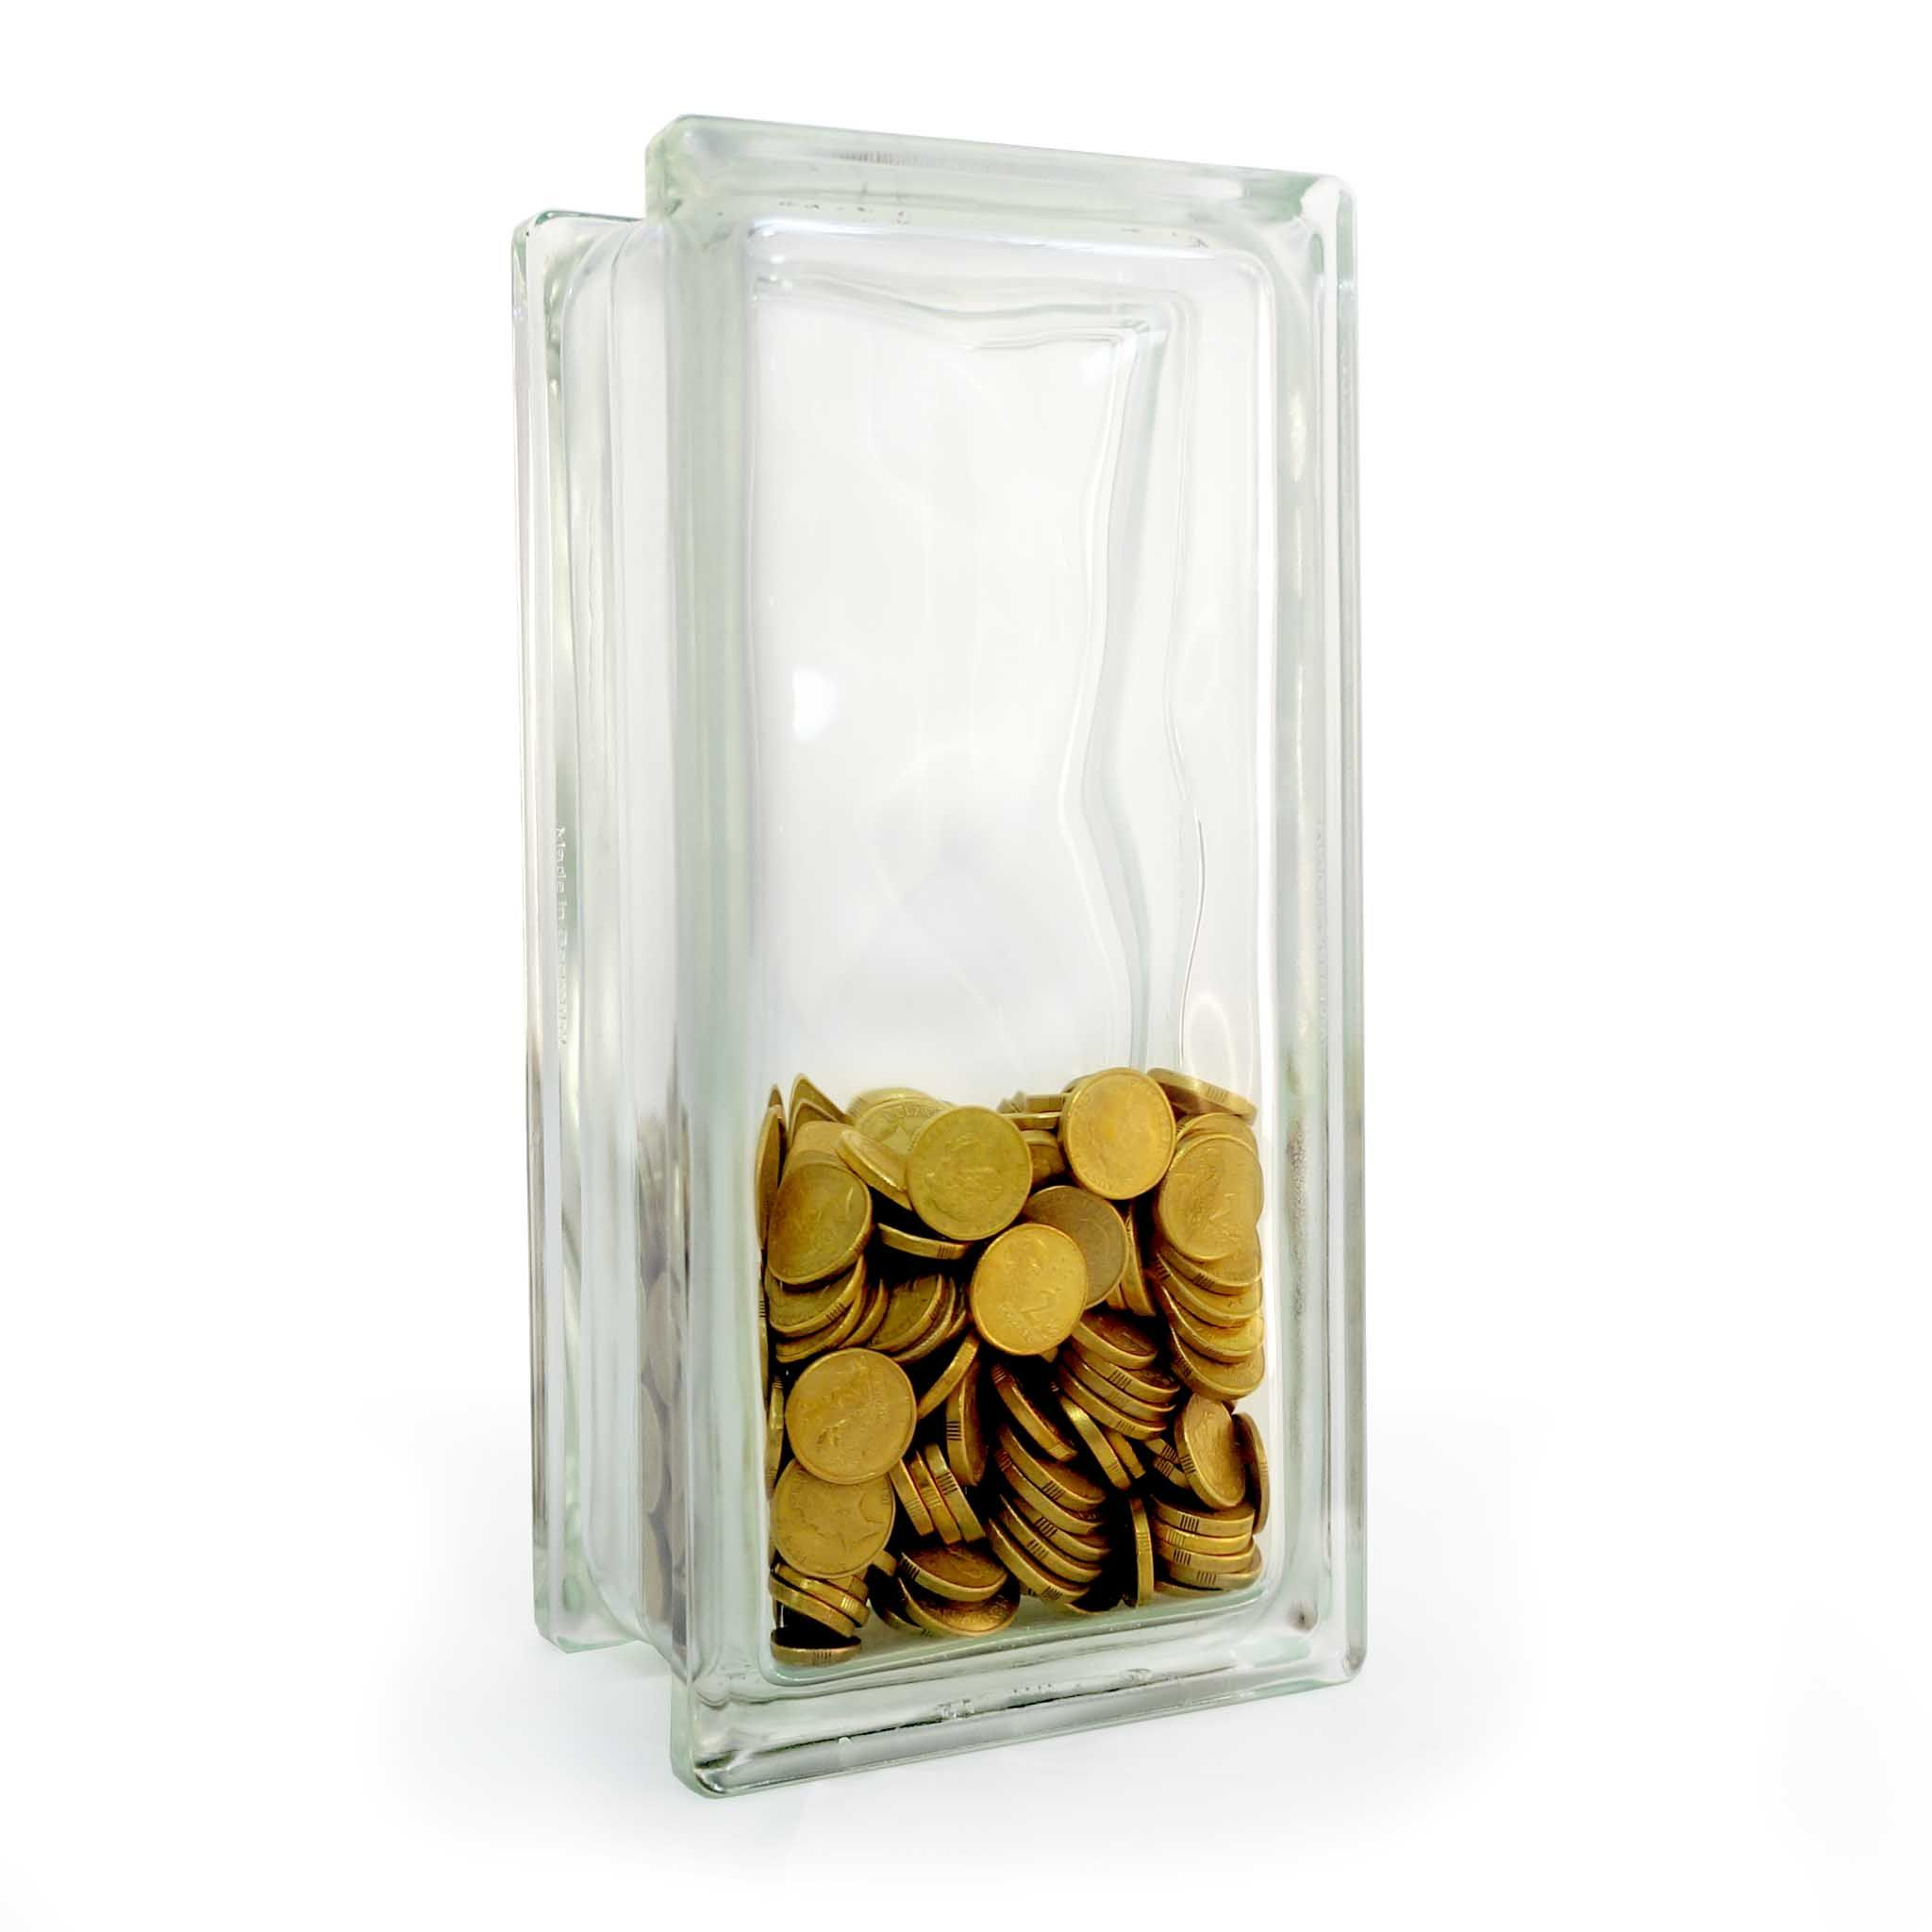 Clear glass blocks for crafts - Put That Spare Change Towards A Savings Goal And Watch It Grow In This Clear Glass